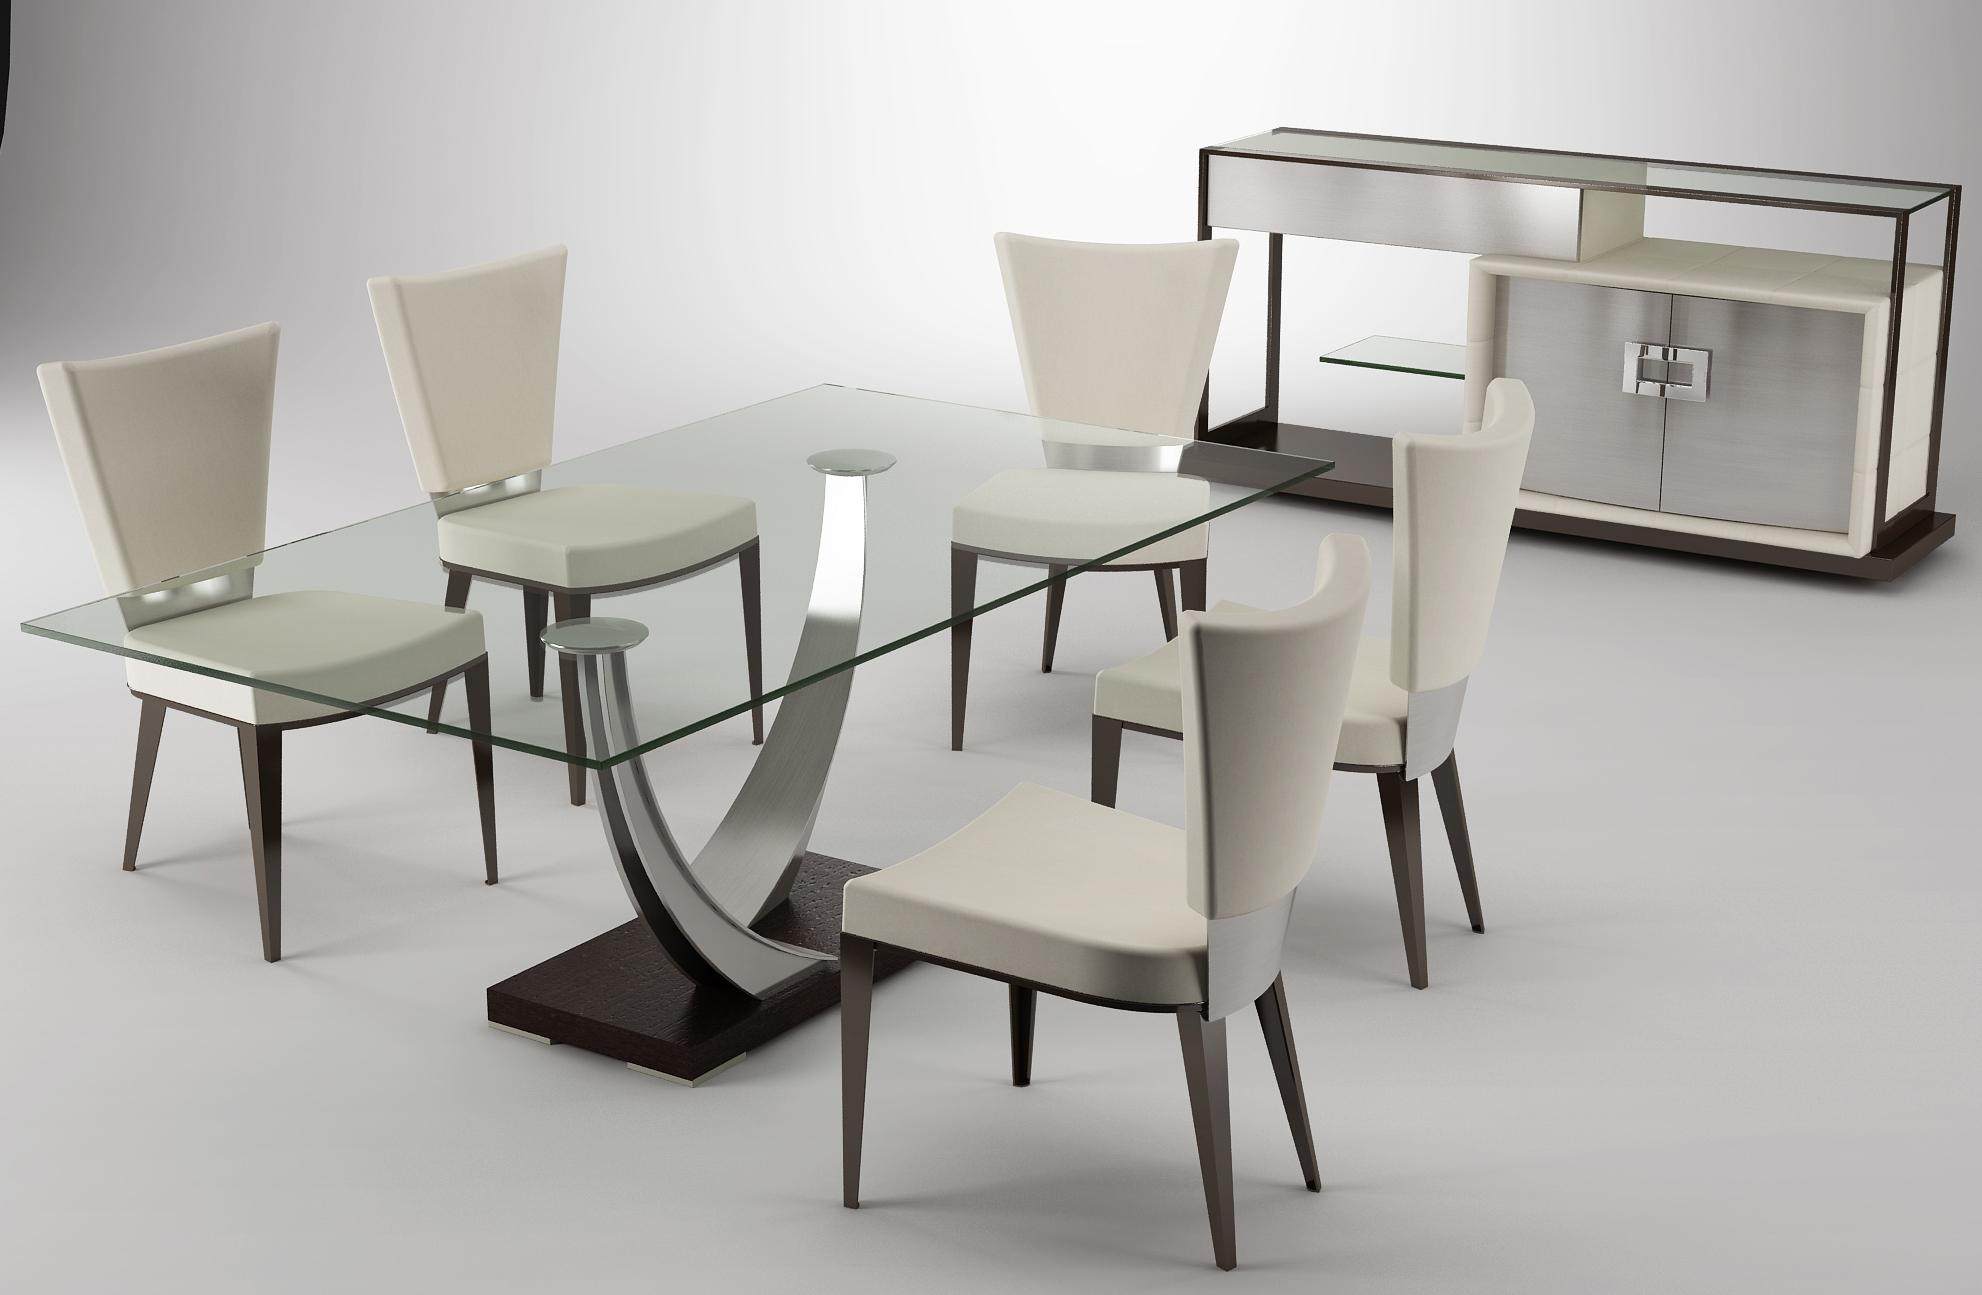 Designer Dining Table And Chairs 19 Magnificent Modern Dining Tables You Need To See Right Now